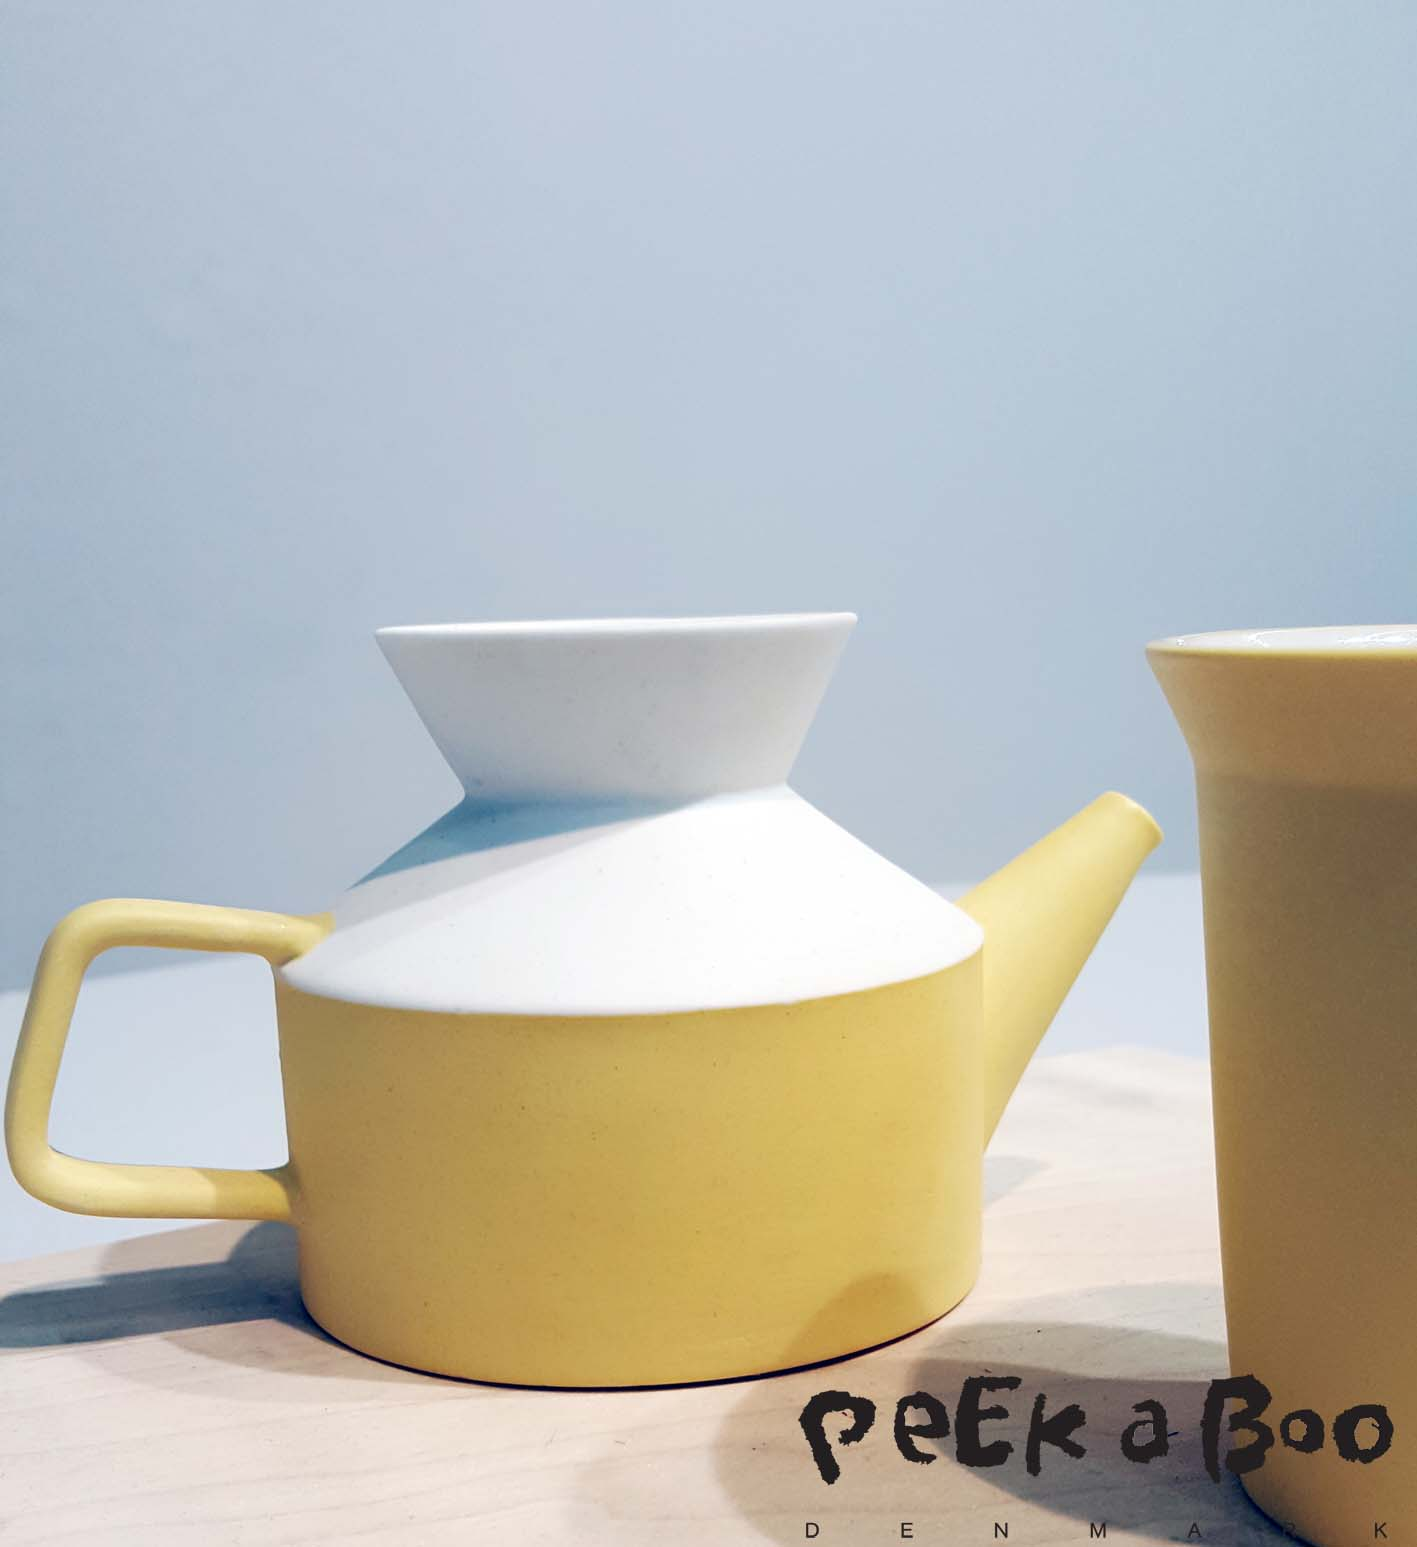 Moiminjia is a Chinese porcelain brand.